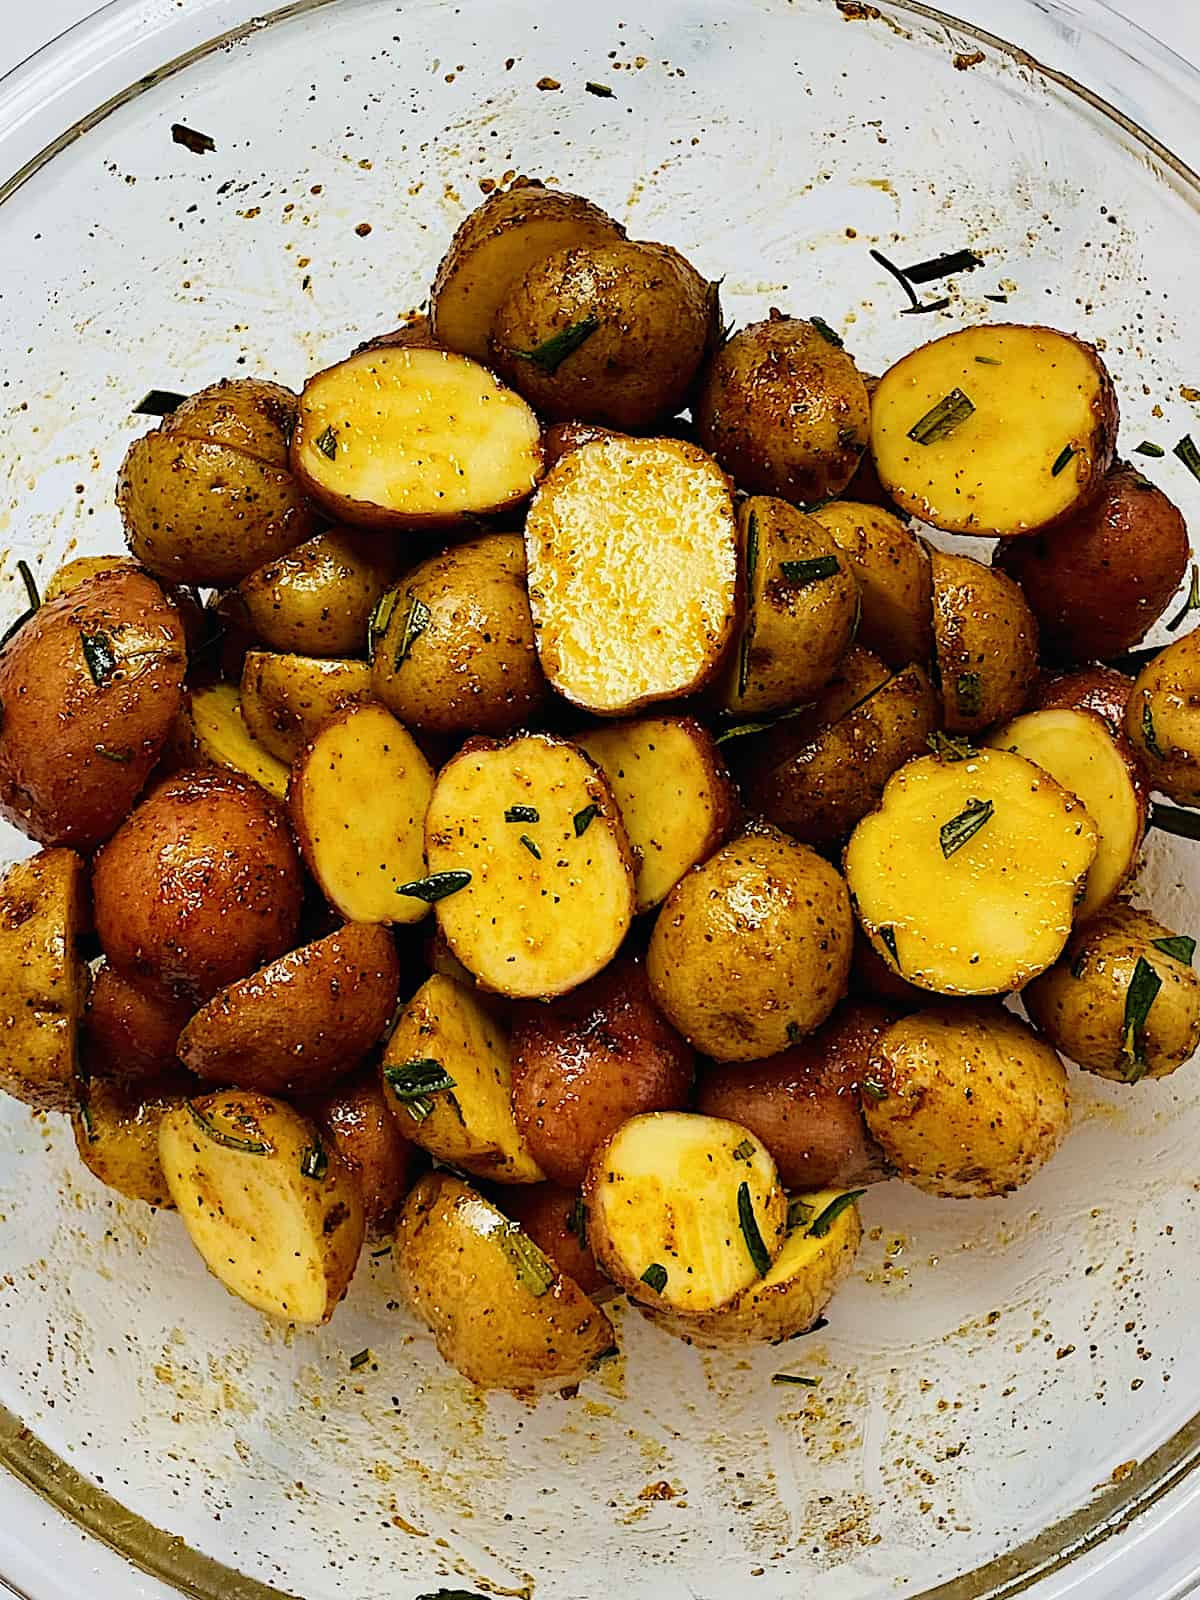 baby potatoes cut in half and mixed with oil, spices and rosemary